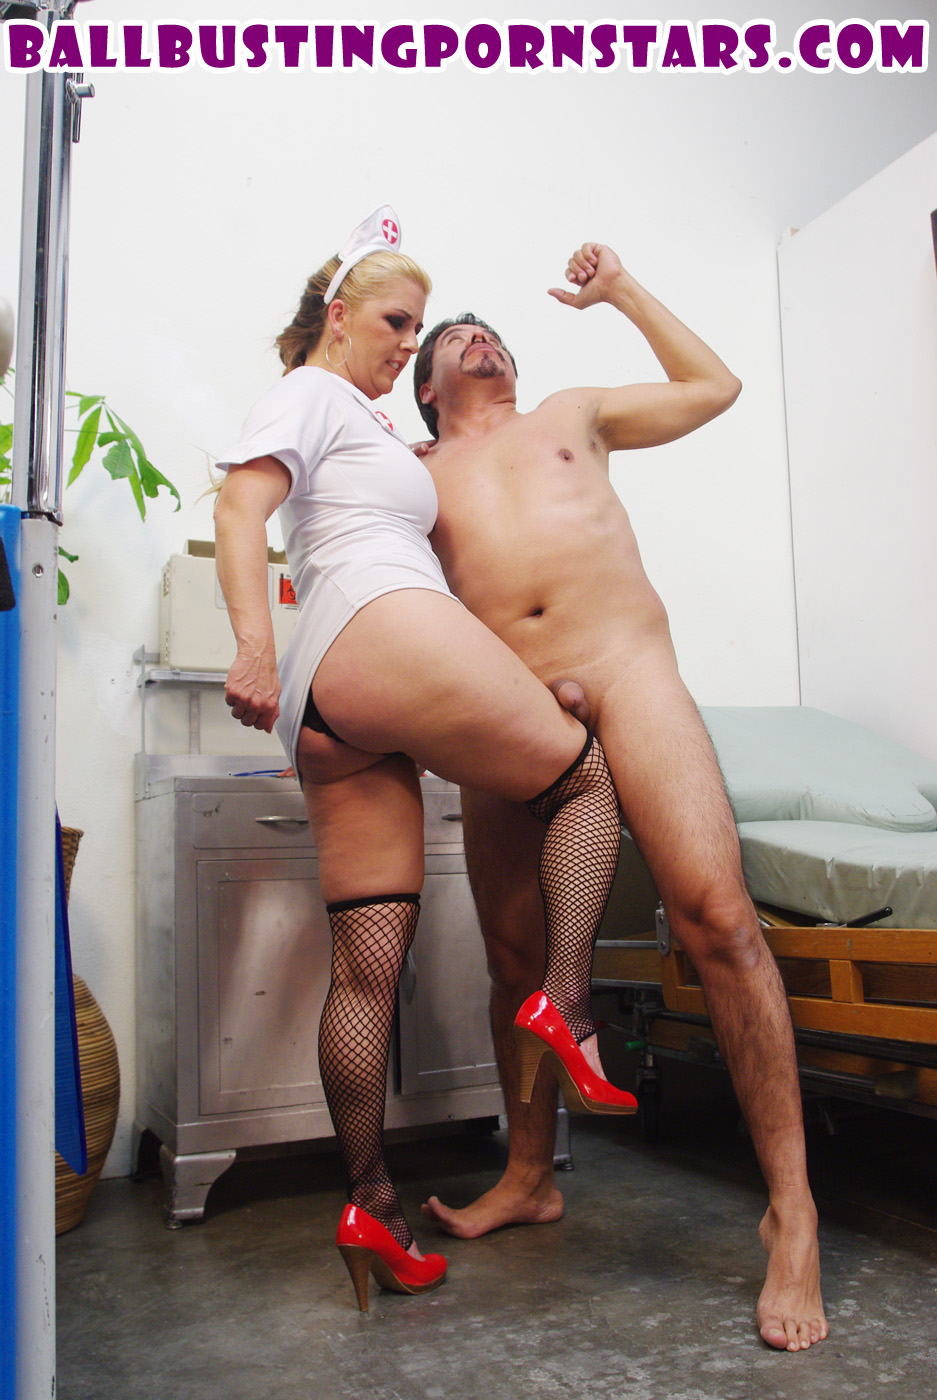 Not joclyn stone ballbusting are mistaken